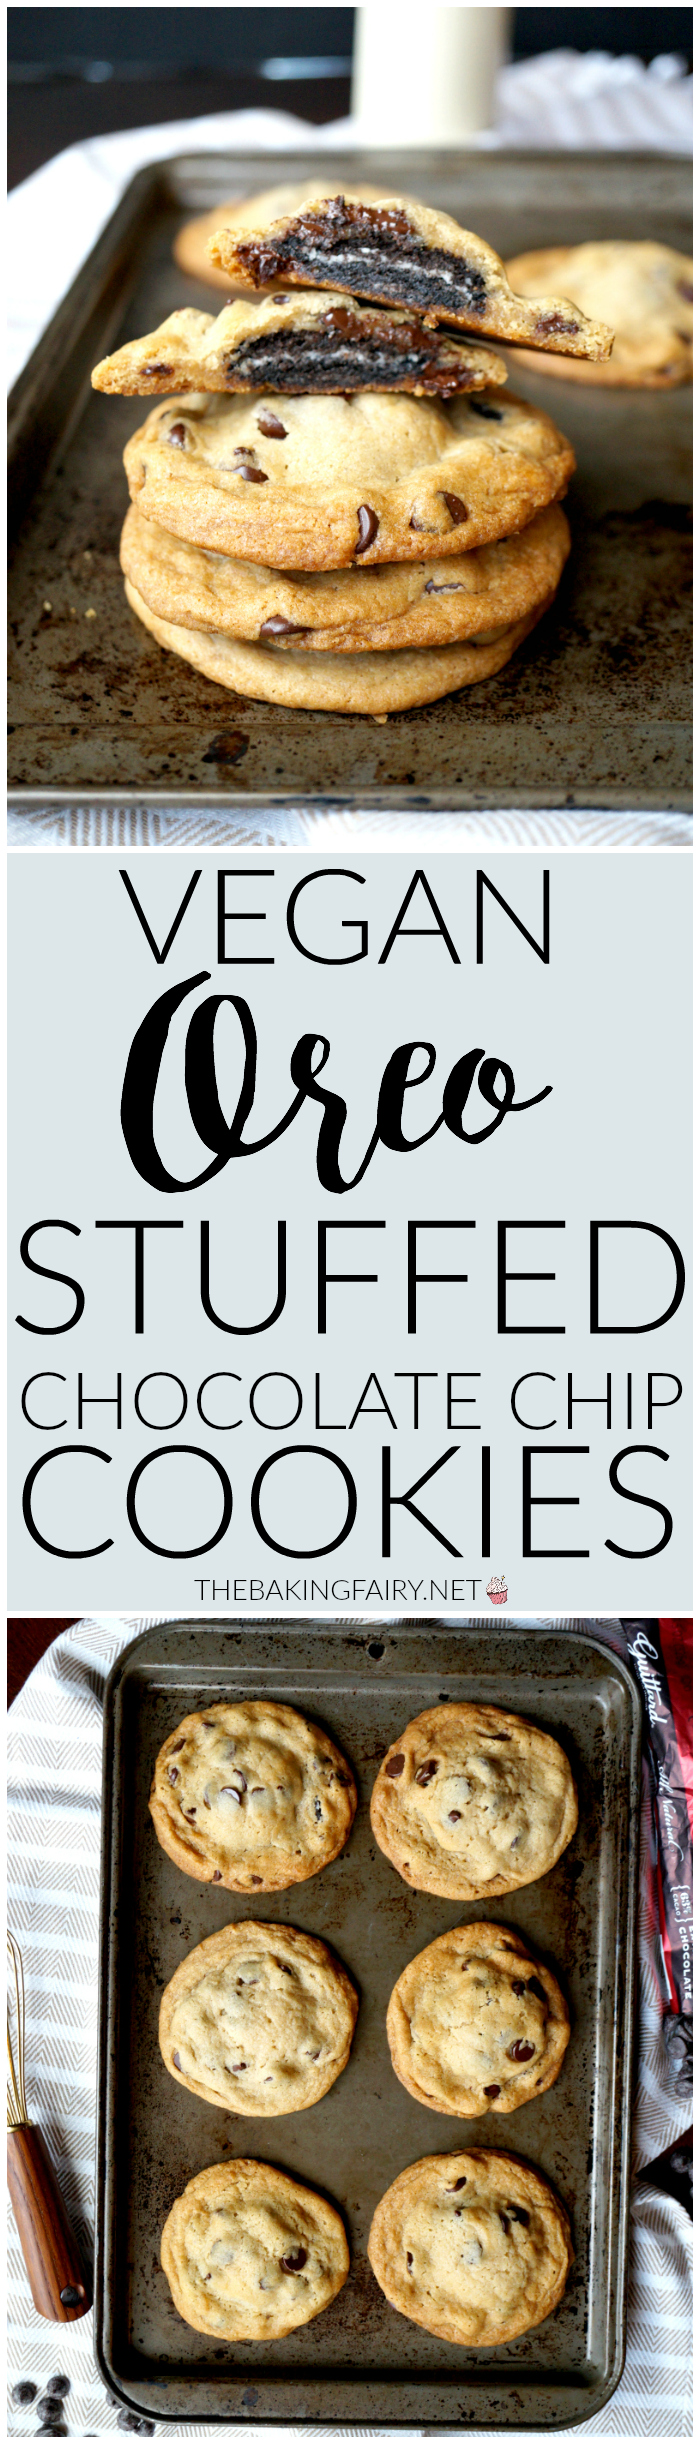 vegan oreo-stuffed chocolate chip cookies | The Baking Fairy